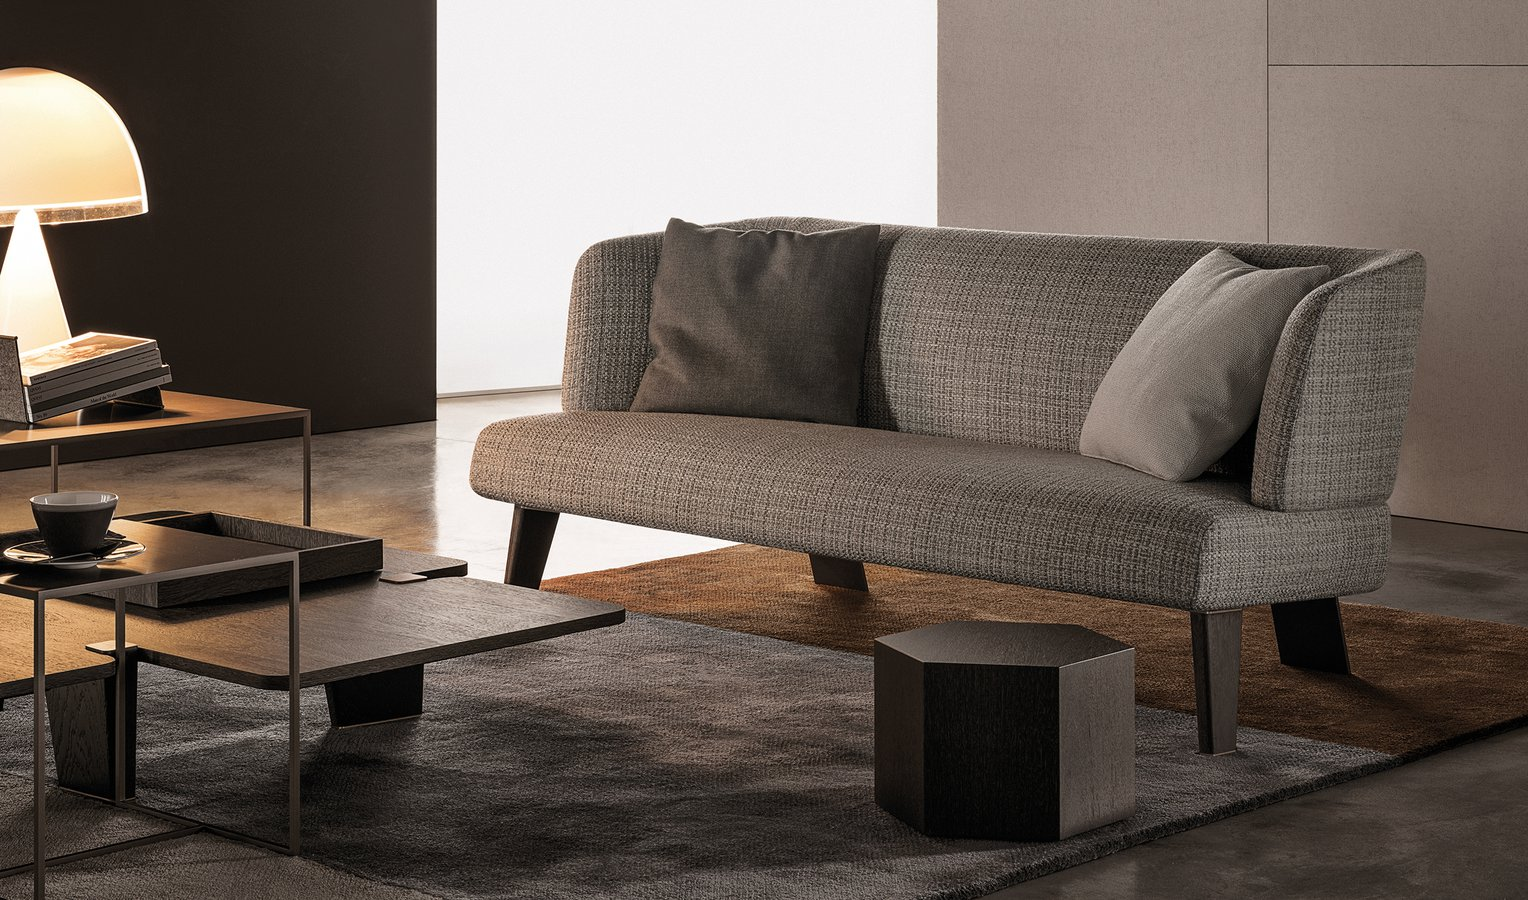 Sofa Lounge Nz Creed Lounge By Minotti Ecc